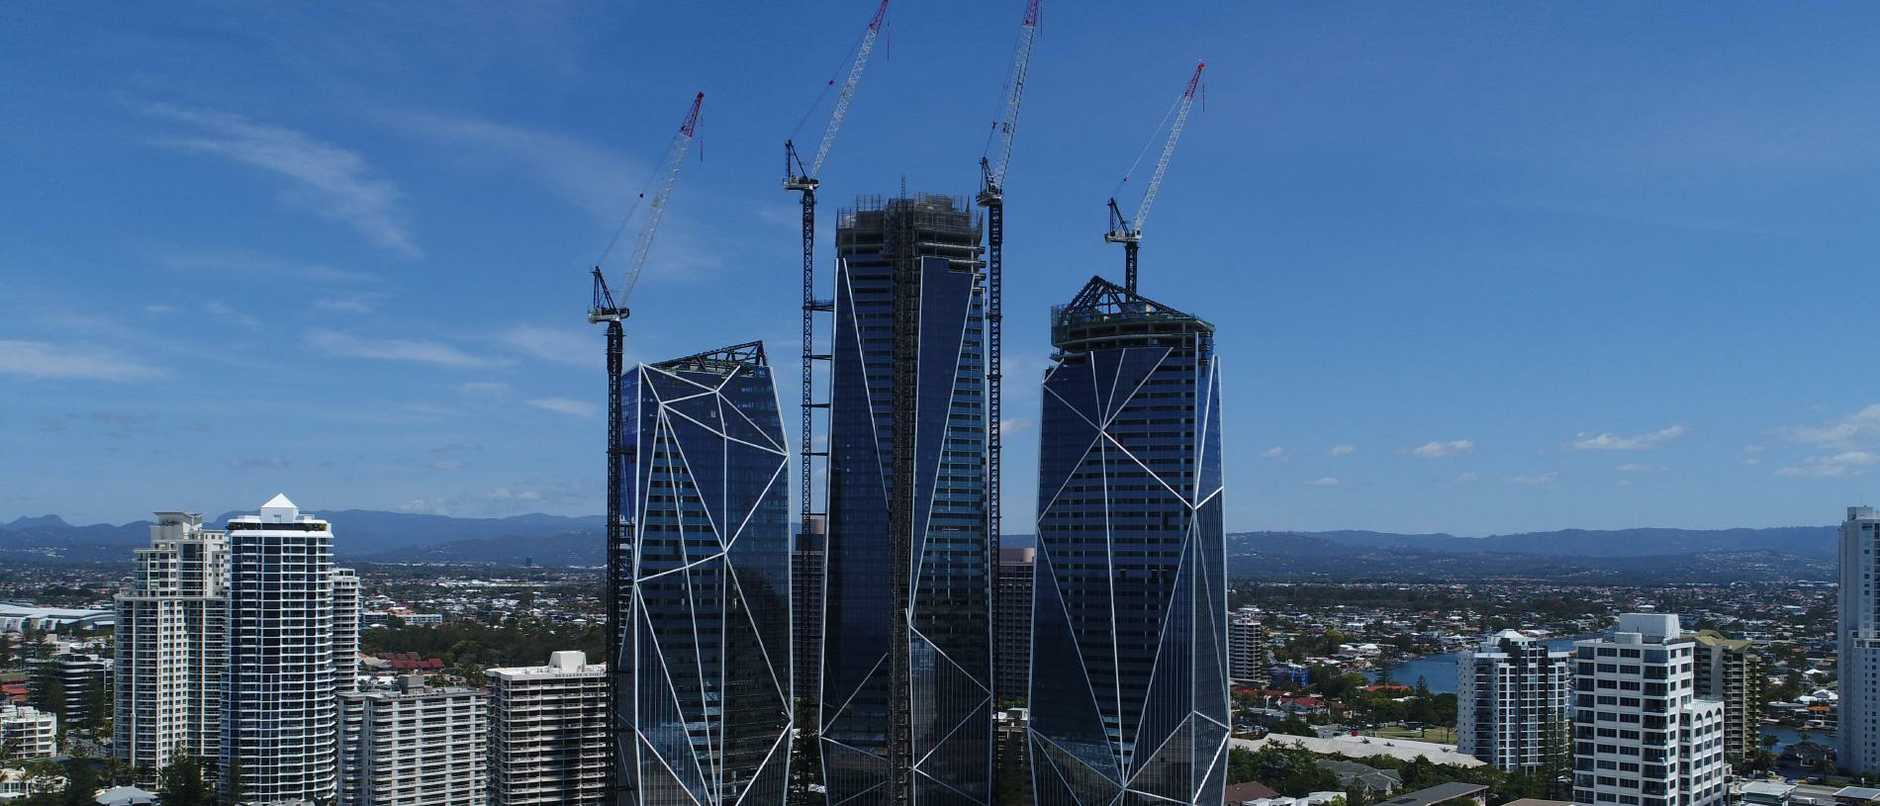 The Jewel triple towers have topped out but interior work remains and retenders of parts of the original main Multiplex contract are required to finish the ambitious $1.4 billion project. Picture: Glenn Hampson